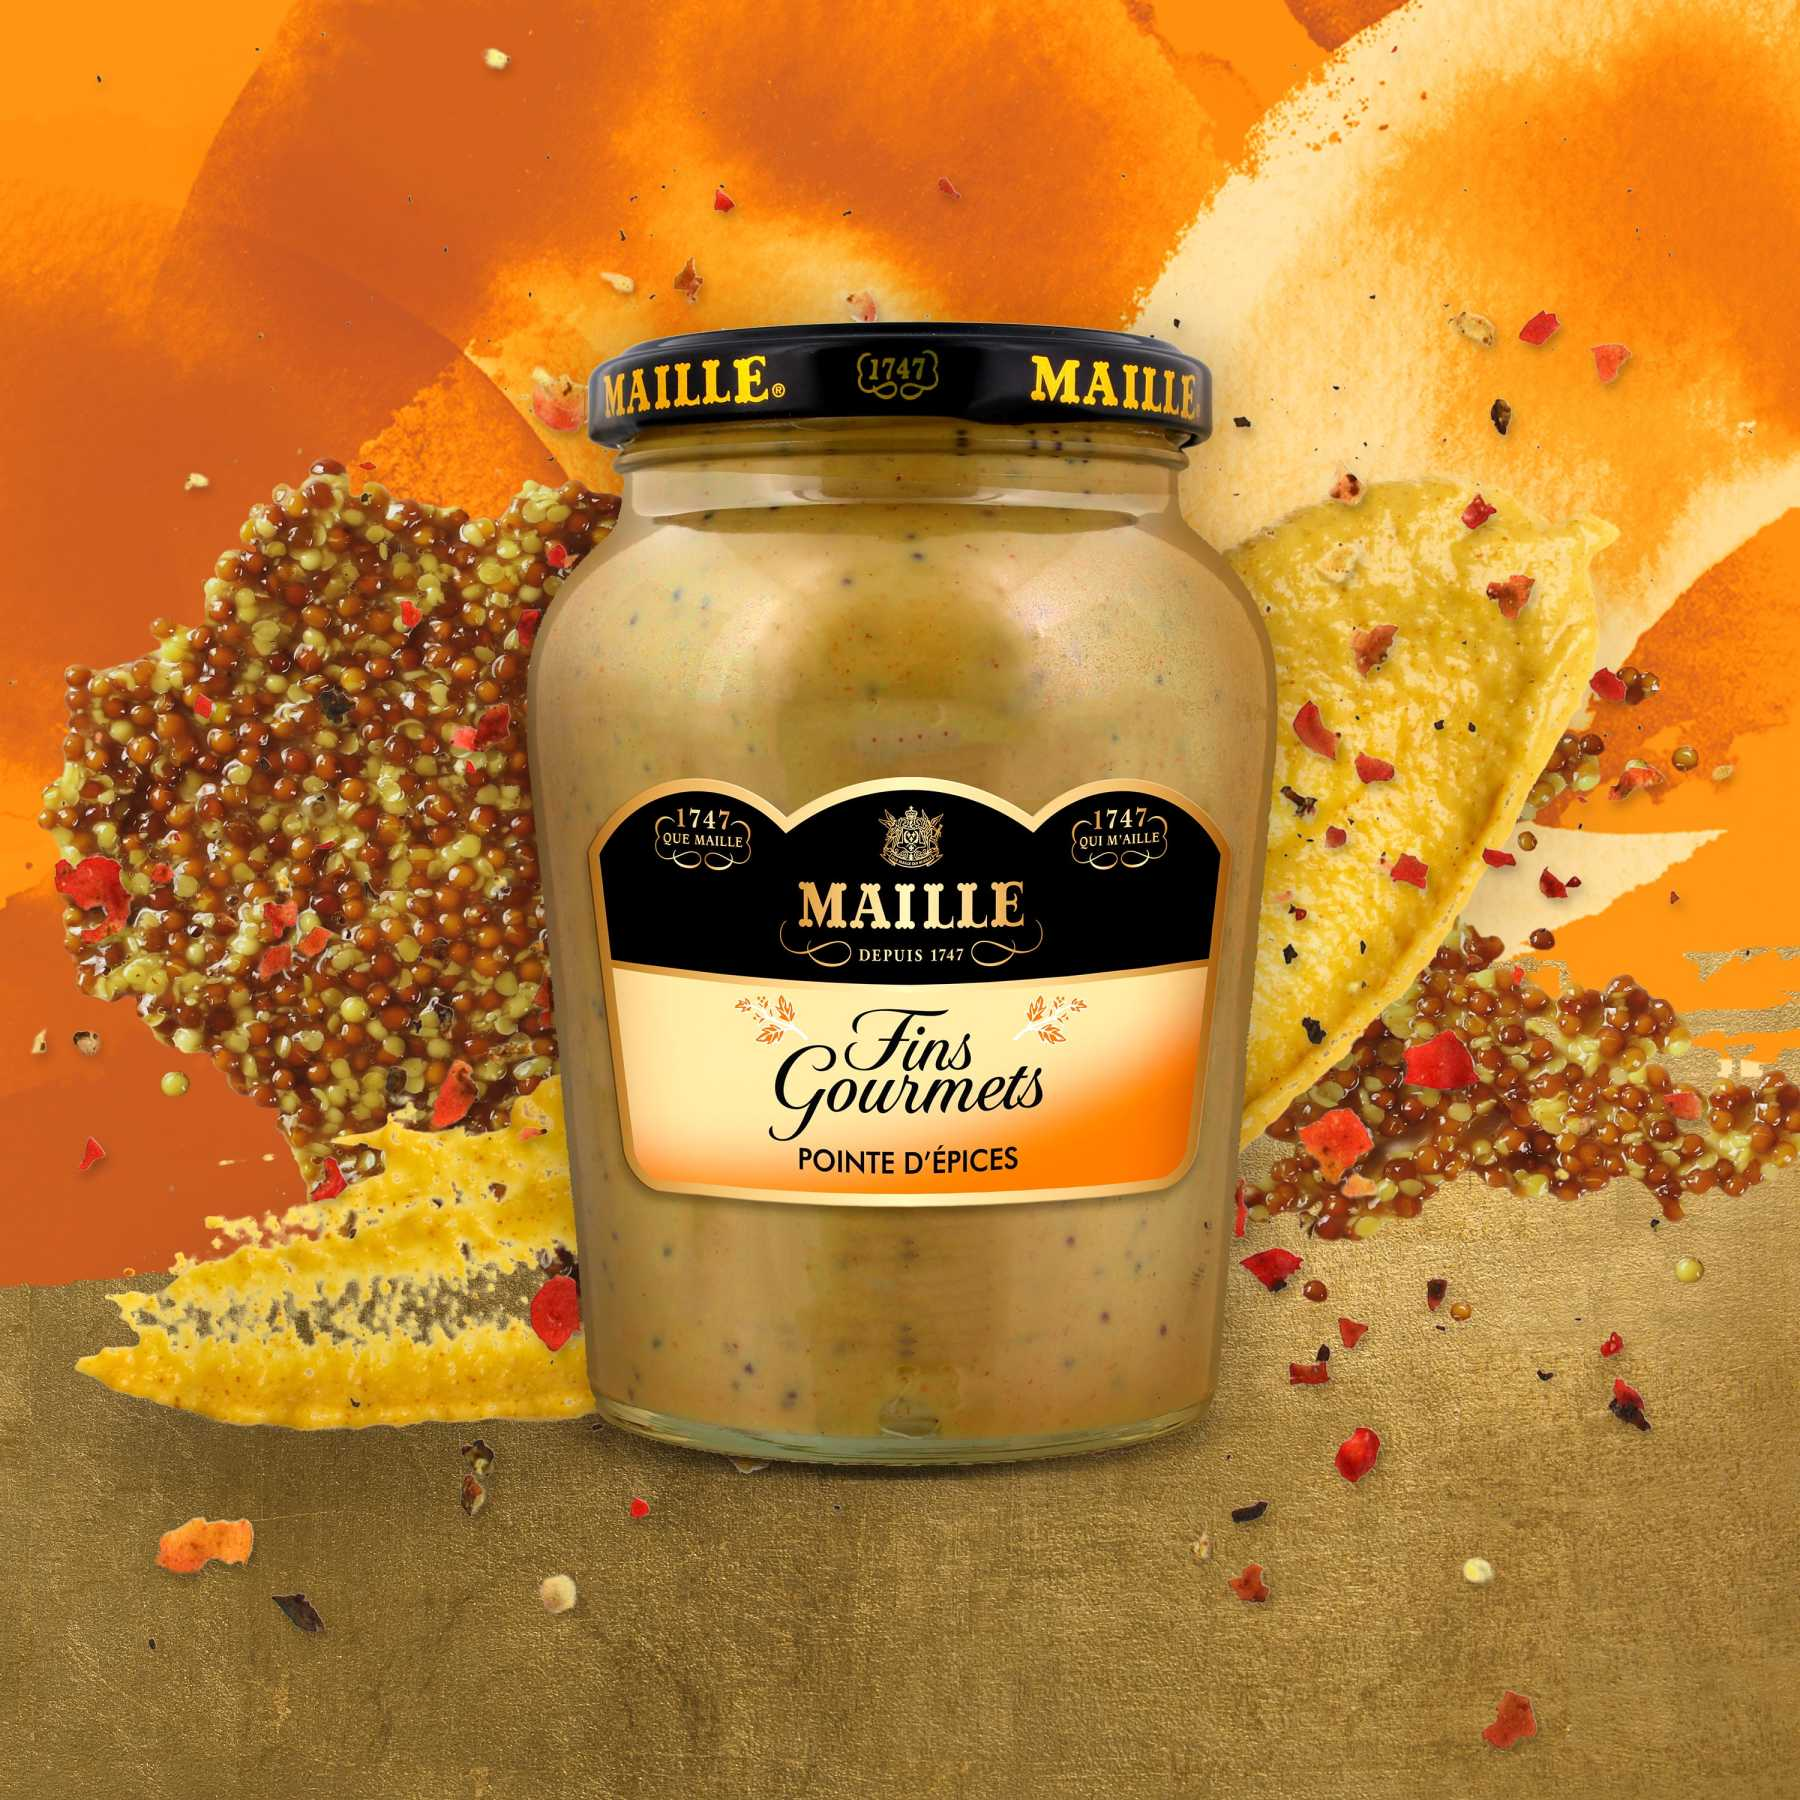 Maille Specialite a la Moutarde Fins Gourmets Pointe d'Epices Bocal 340g, new visual